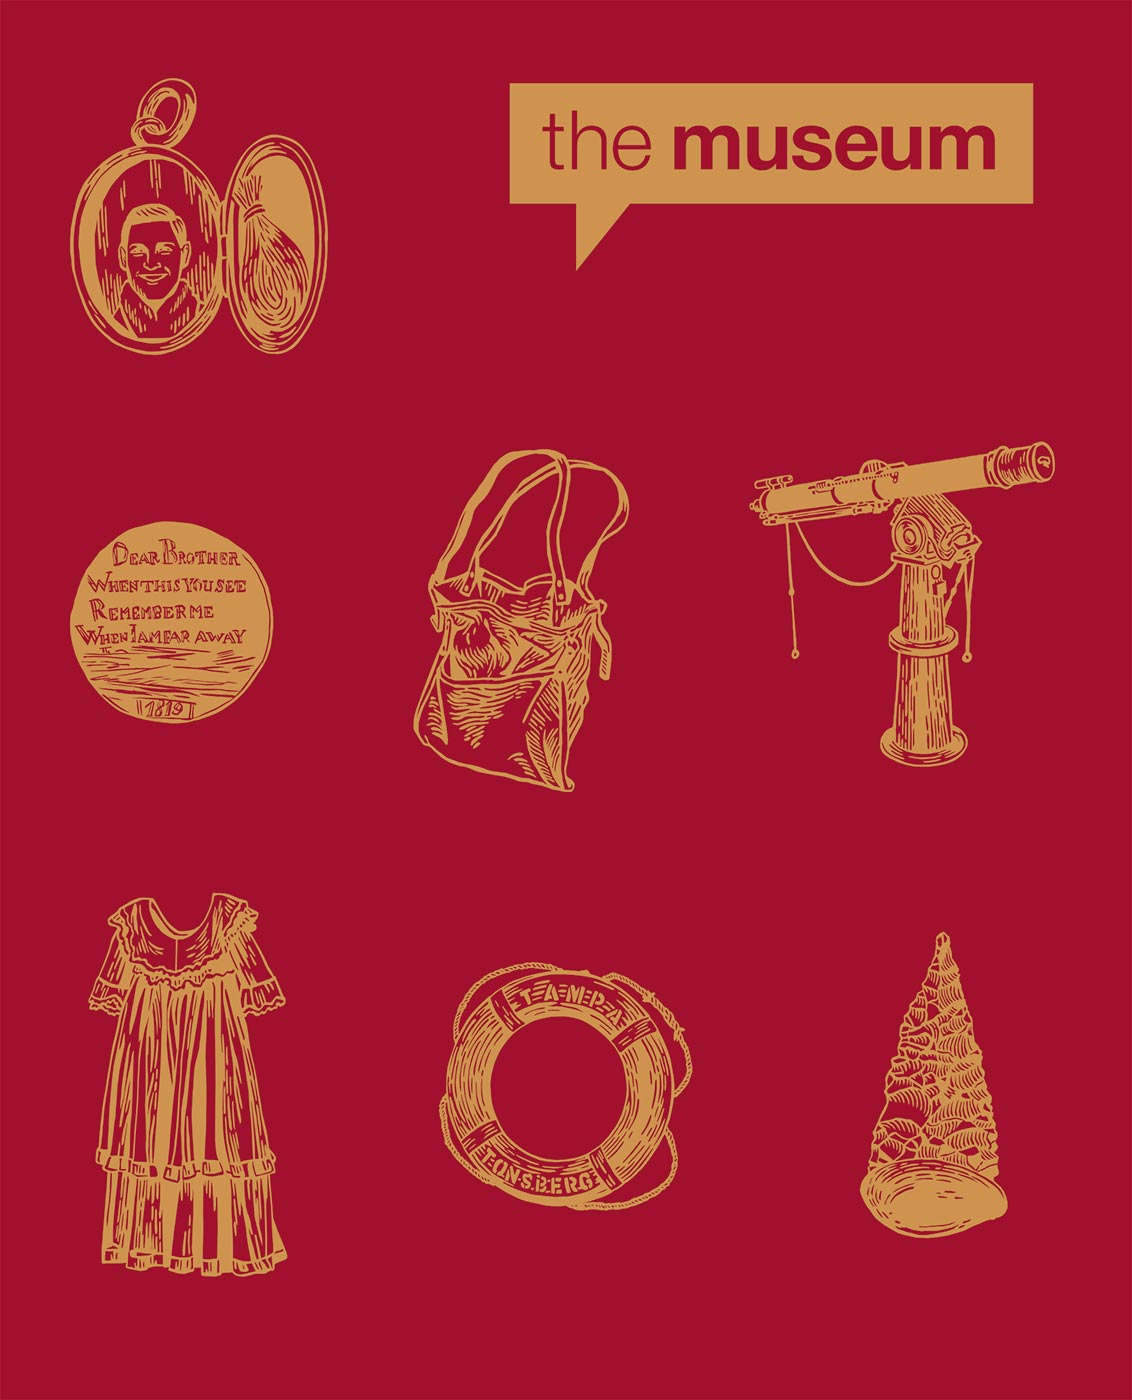 Publications cover for the National Museum of Australia.